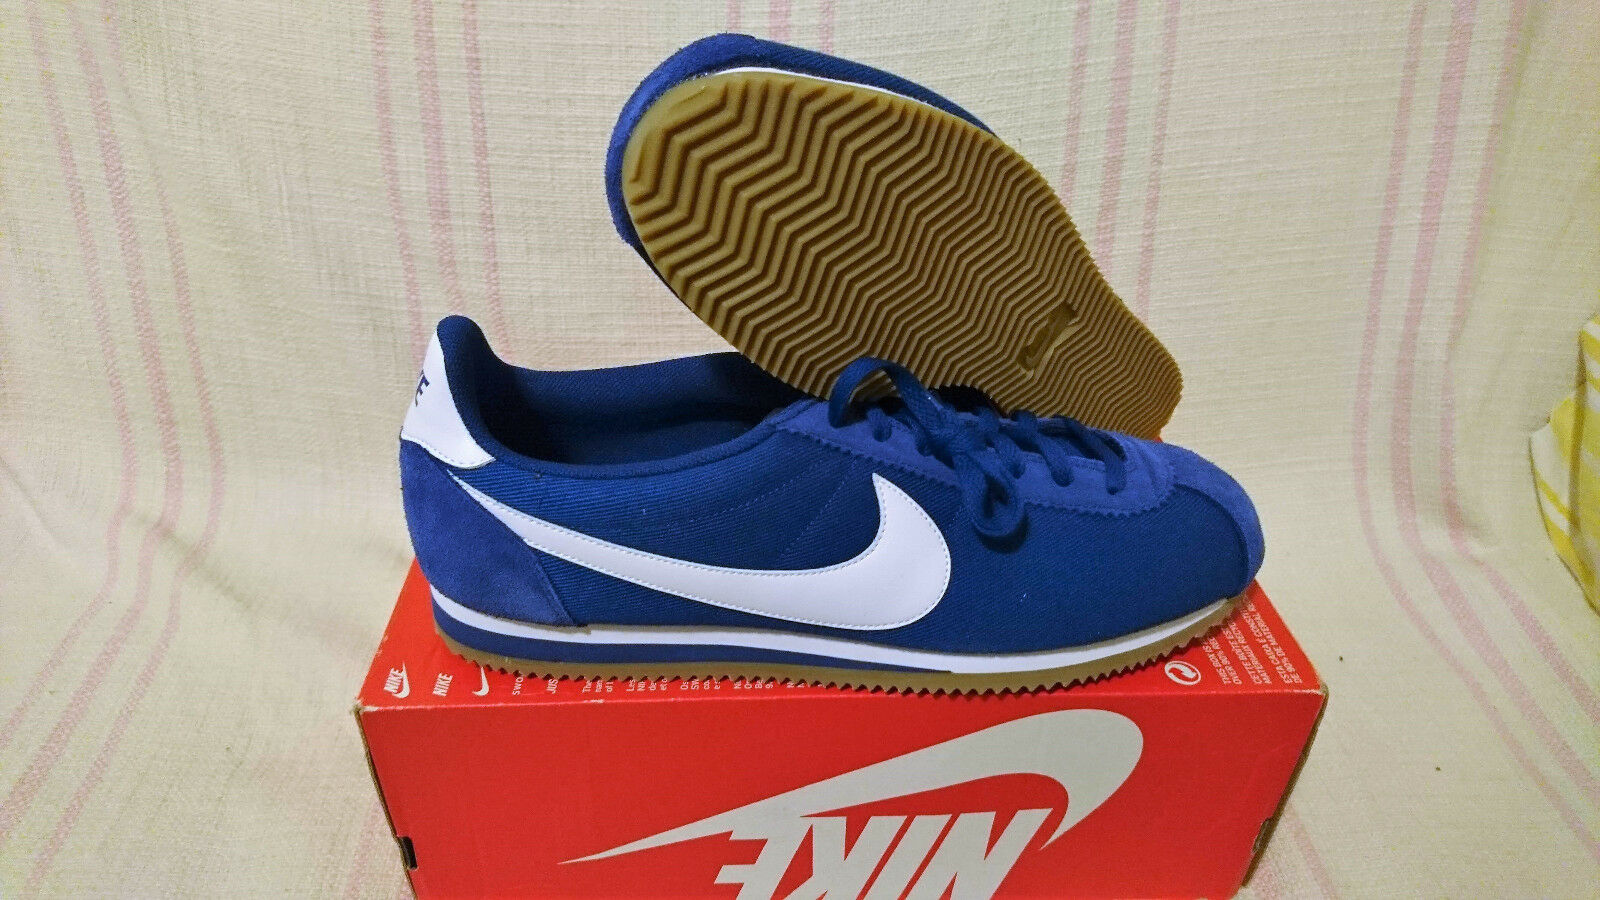 Nike Classic Cortez Basic Nylon Gym bluee White Gum Light Brown 807472 405 Sz 14